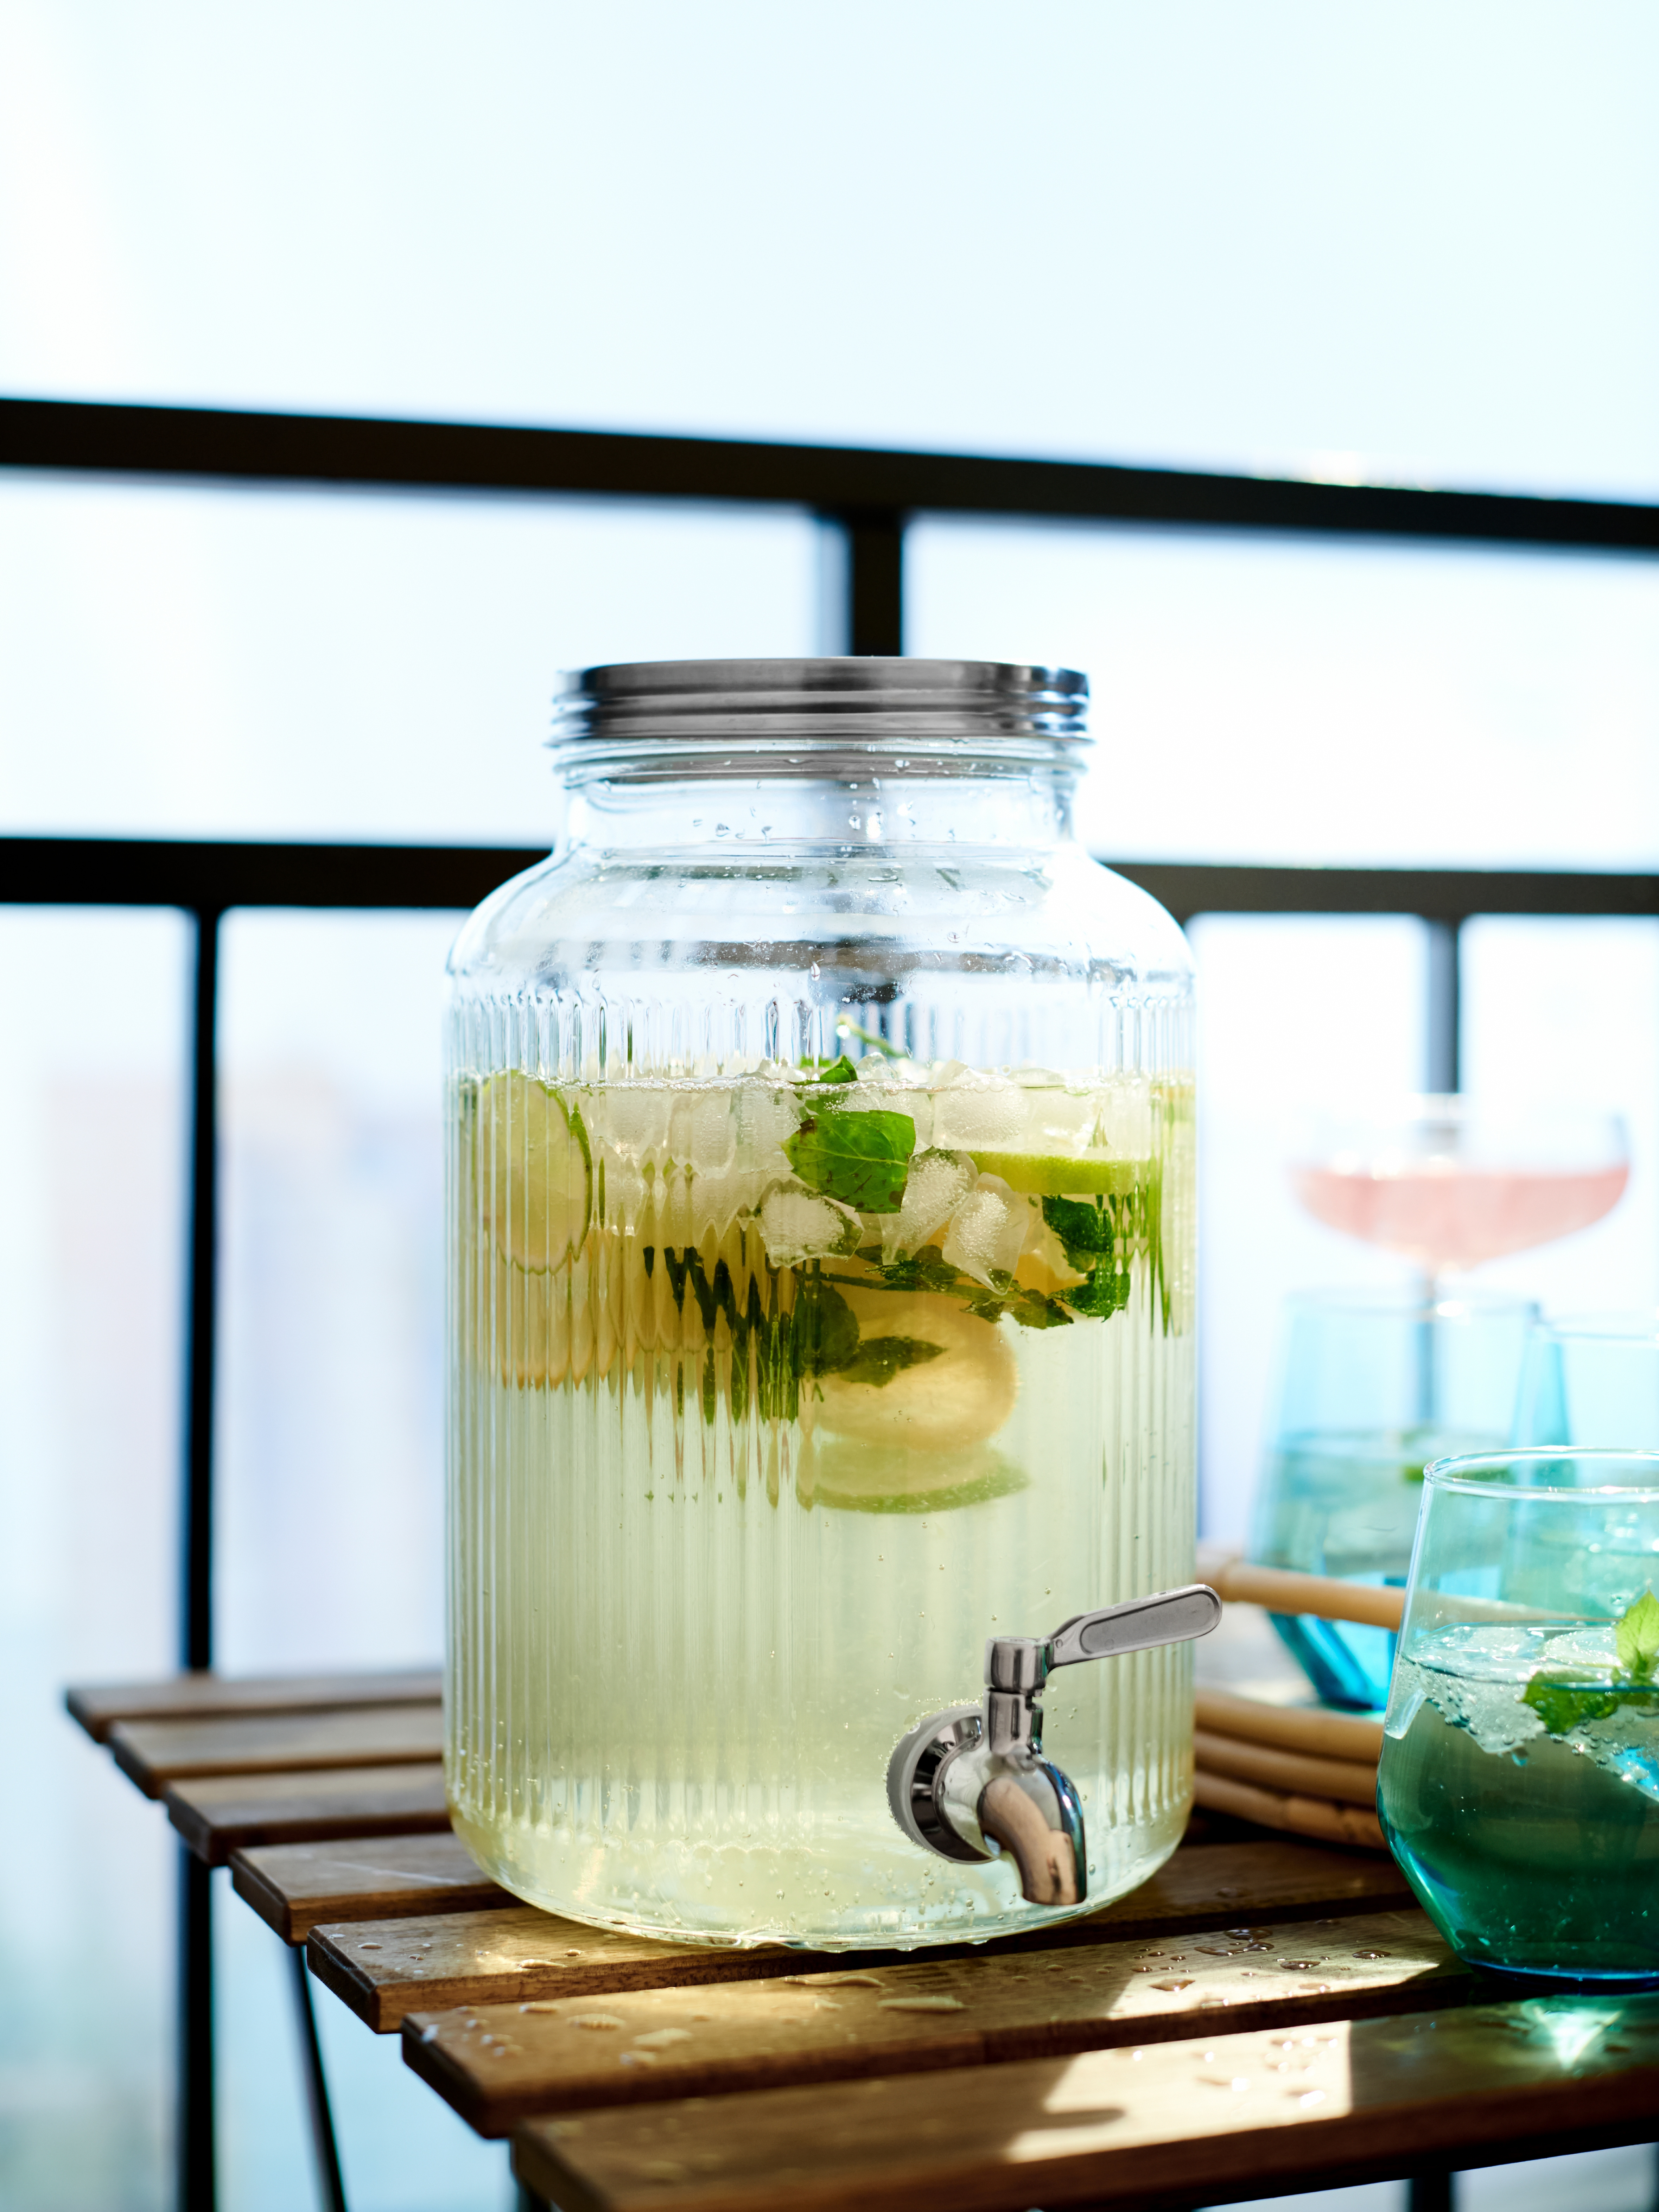 This 5 litre VARDAGEN glass jar with lid and tap holds a citrus drink. It's ready to pour drinks on a balcony table.